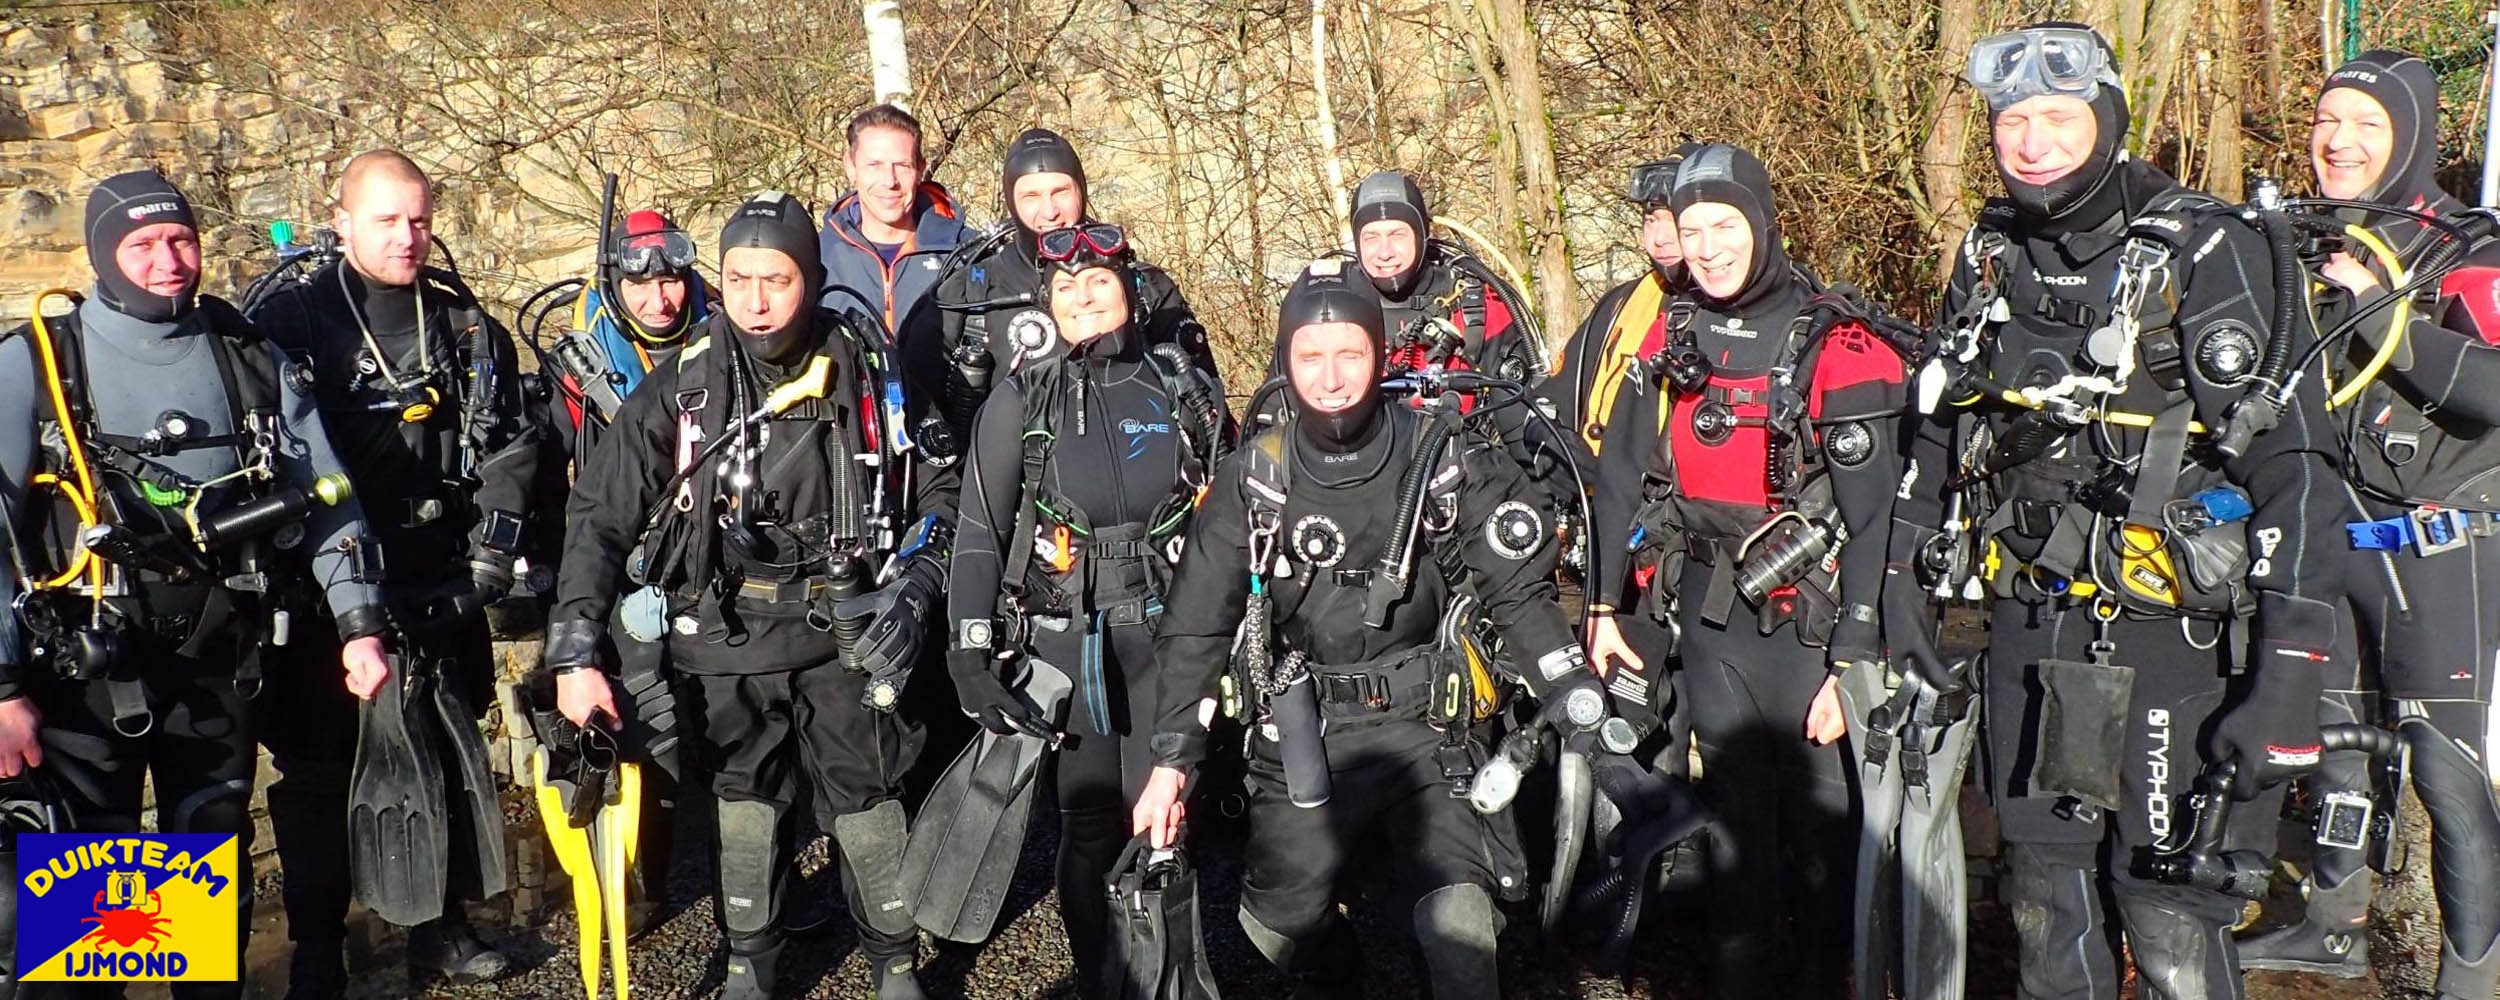 duikteam ijmond duiken in de ardenne met sealover